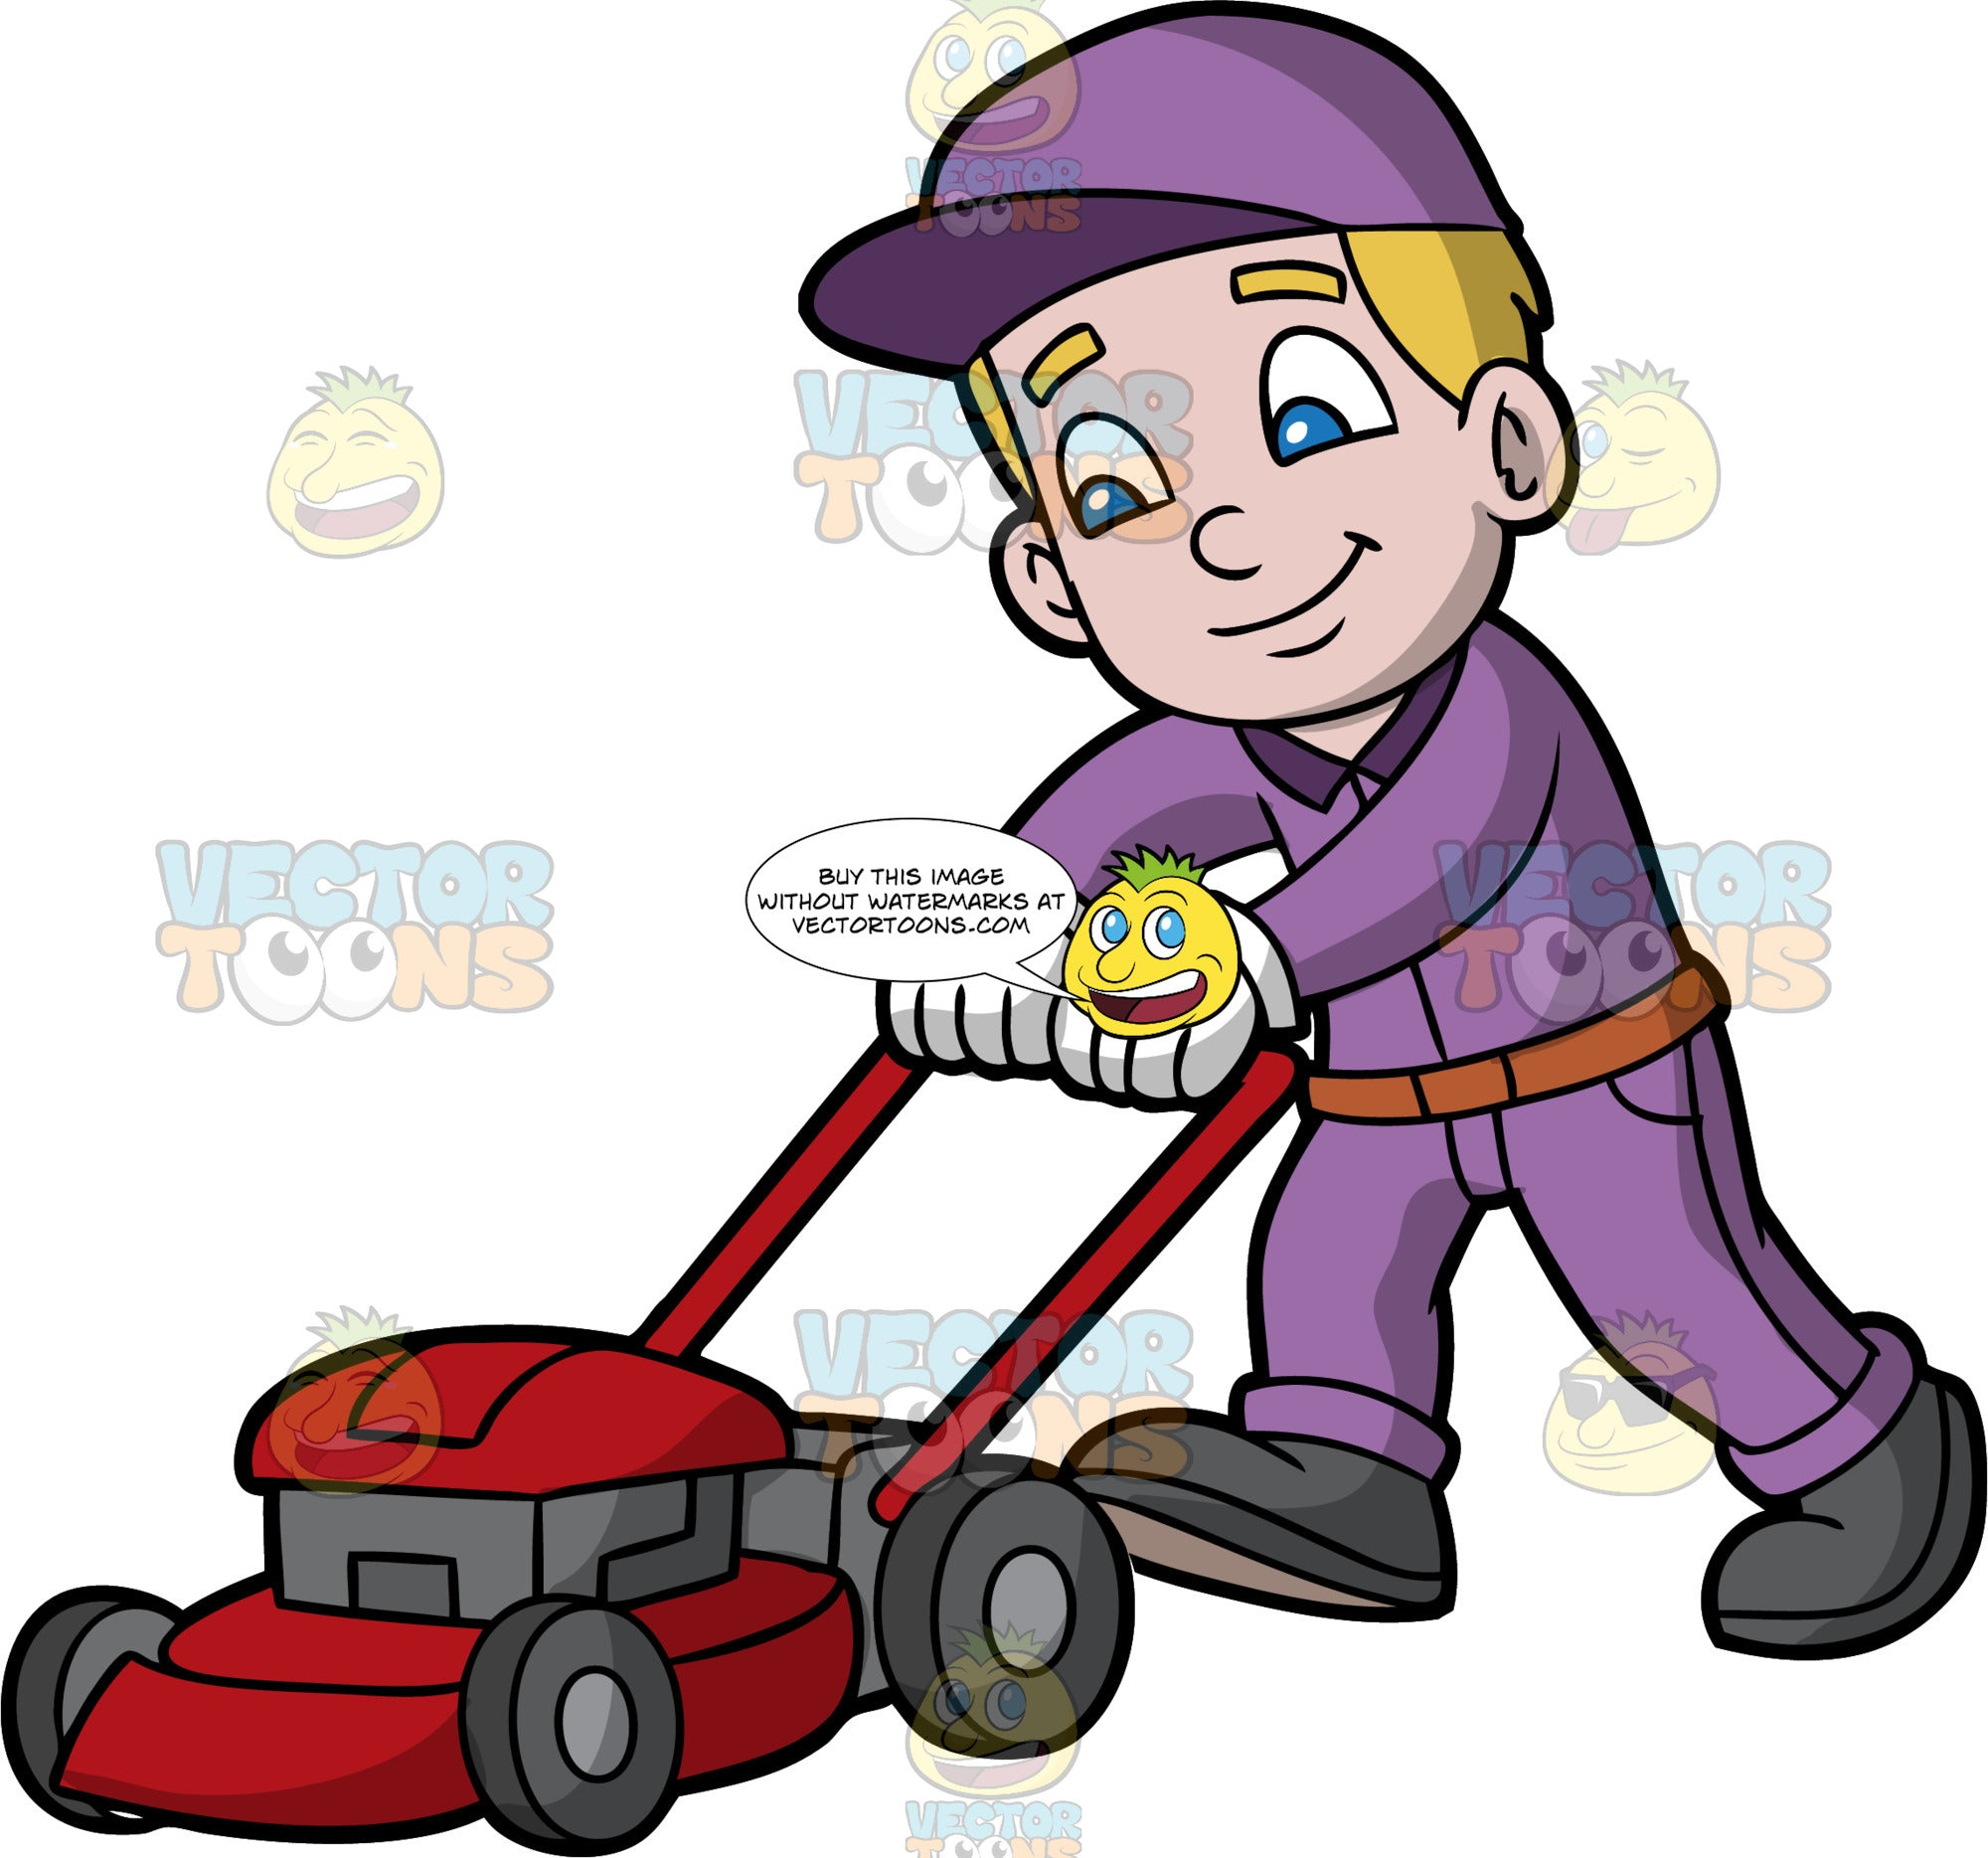 A Boy Cutting The Grass With A Lawnmower. A boy with dark blonde hair and blue eyes, wearing purple overalls, dark gray shoes, white gloves, and a purple hat, pushing a red lawnmower that is cutting the grass